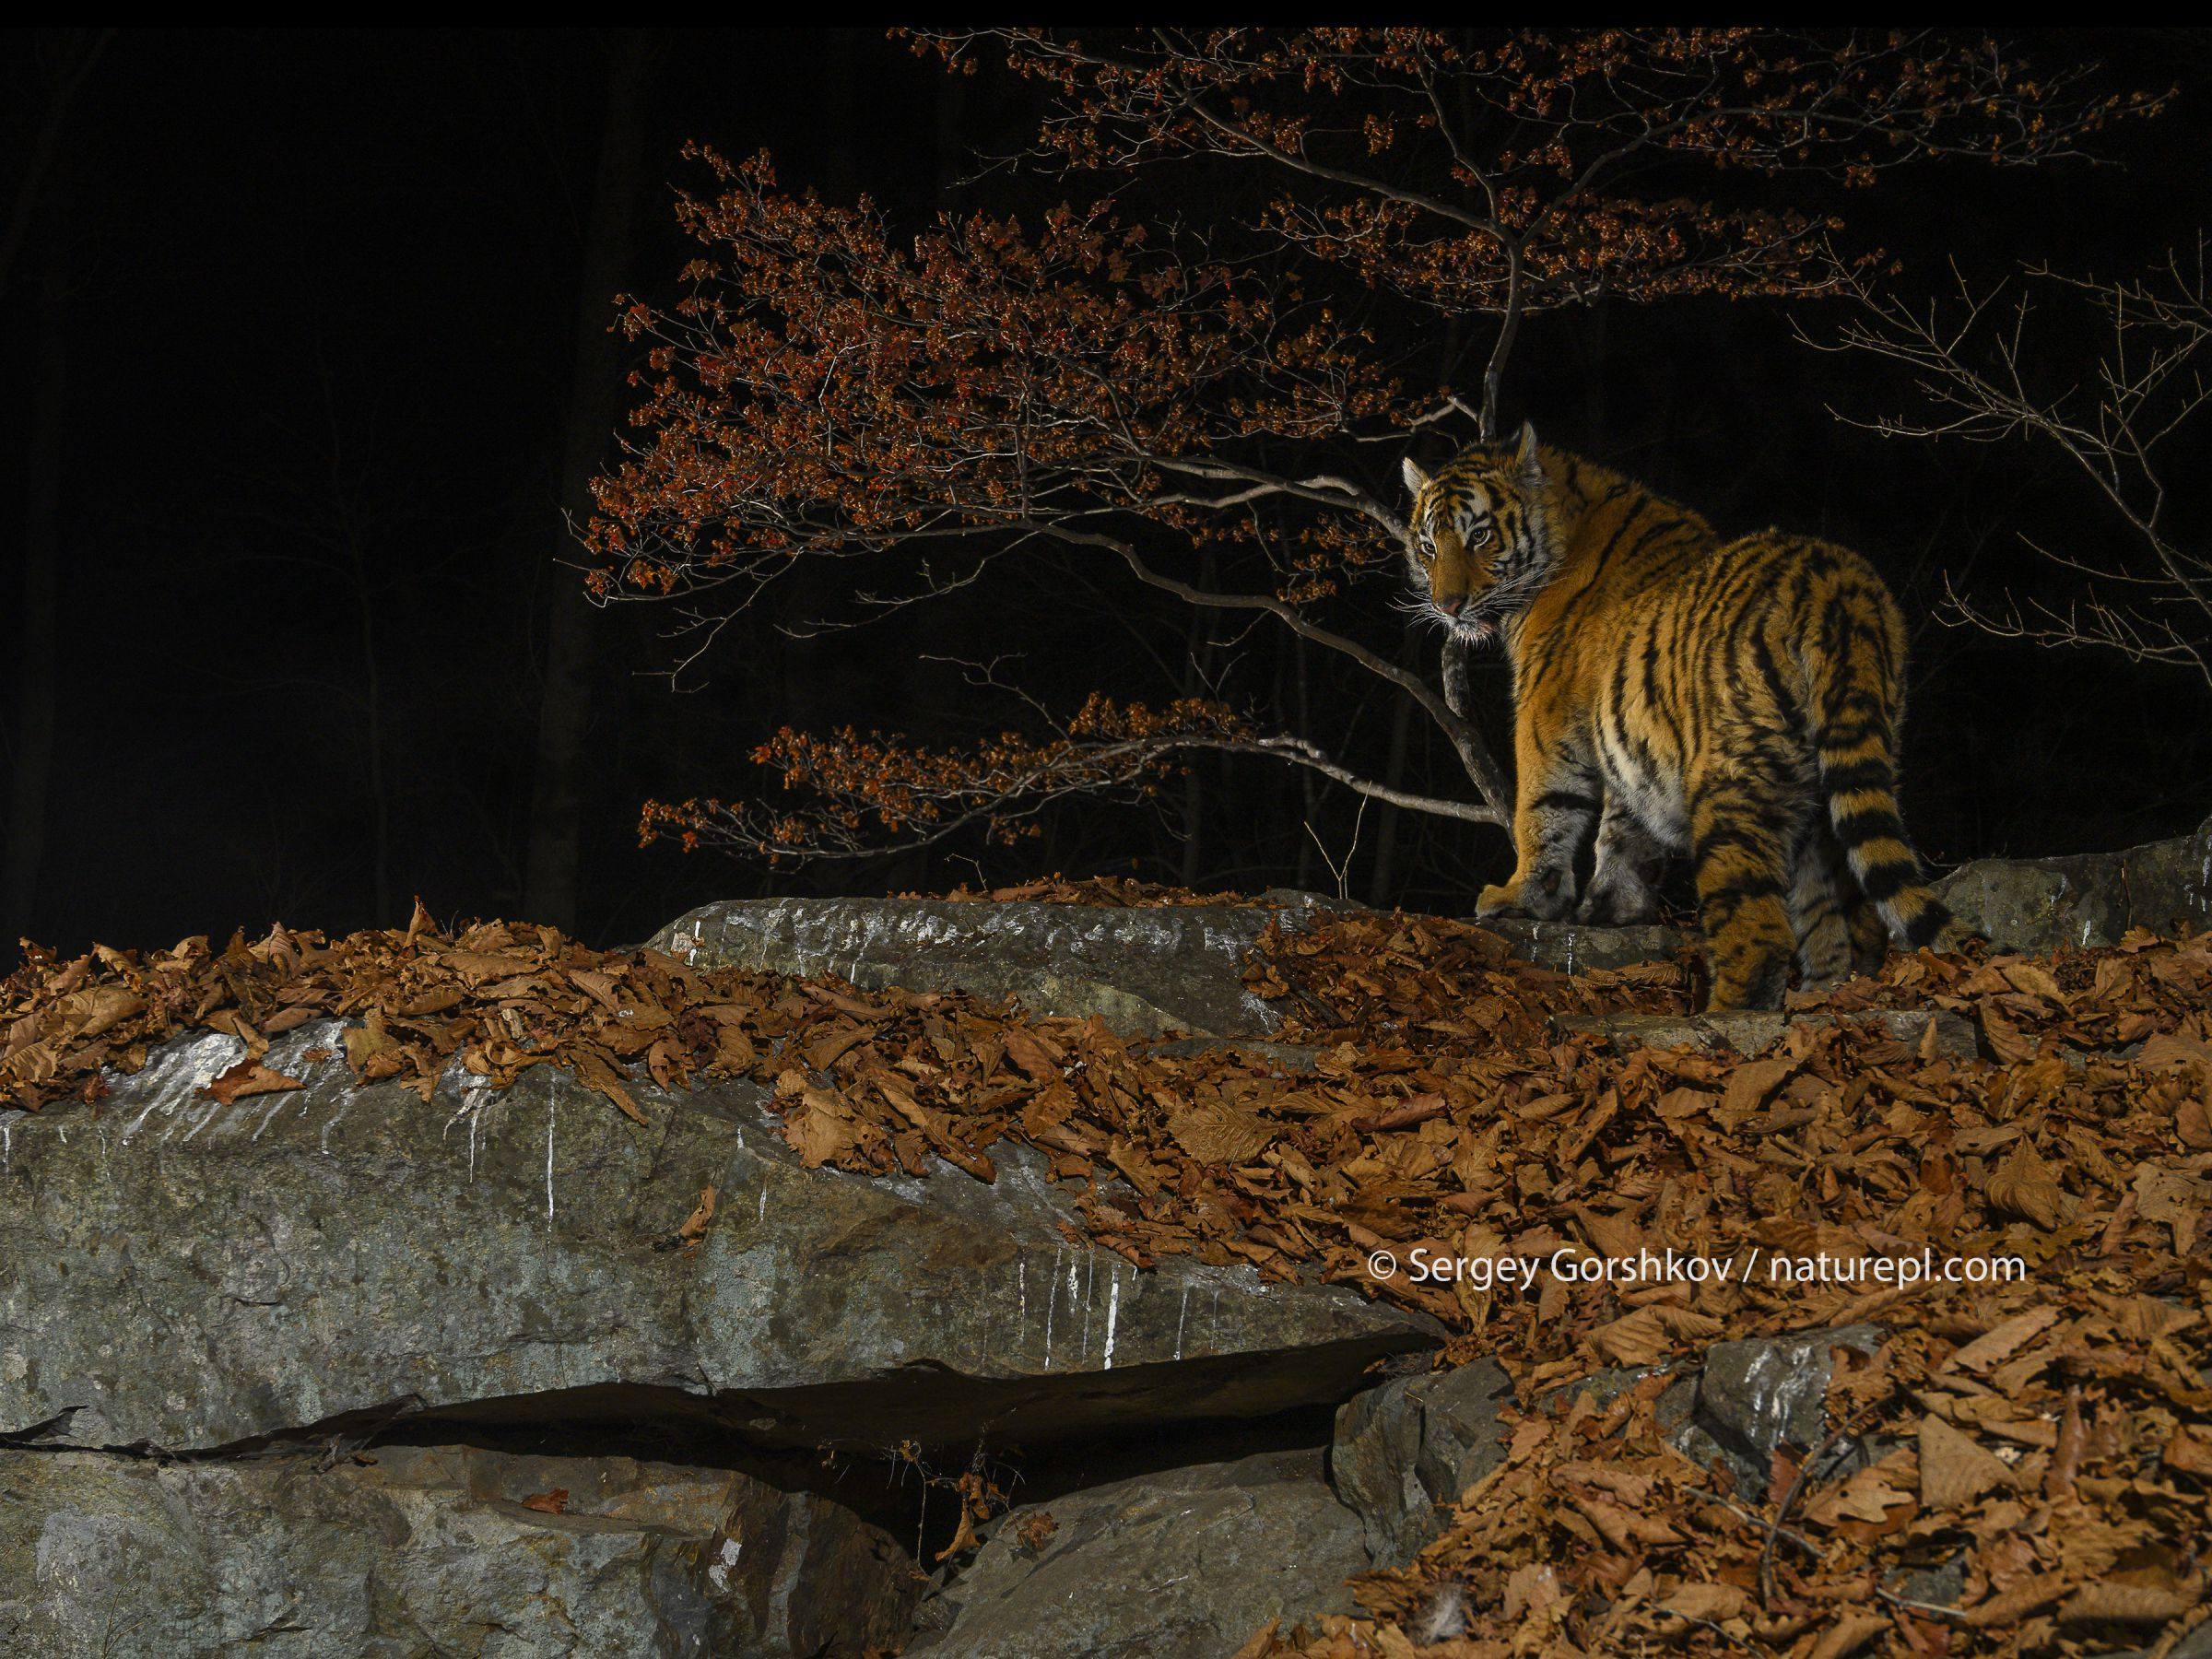 Siberian tiger (Panthera tigris altaica) at night, taken with remote camera in Land of the Leopard National Park, Far East Russia, November.Highly Commended in the Animal Portraits Category of the Wildlife Photographer of the Year Awards (WPOY) 2020